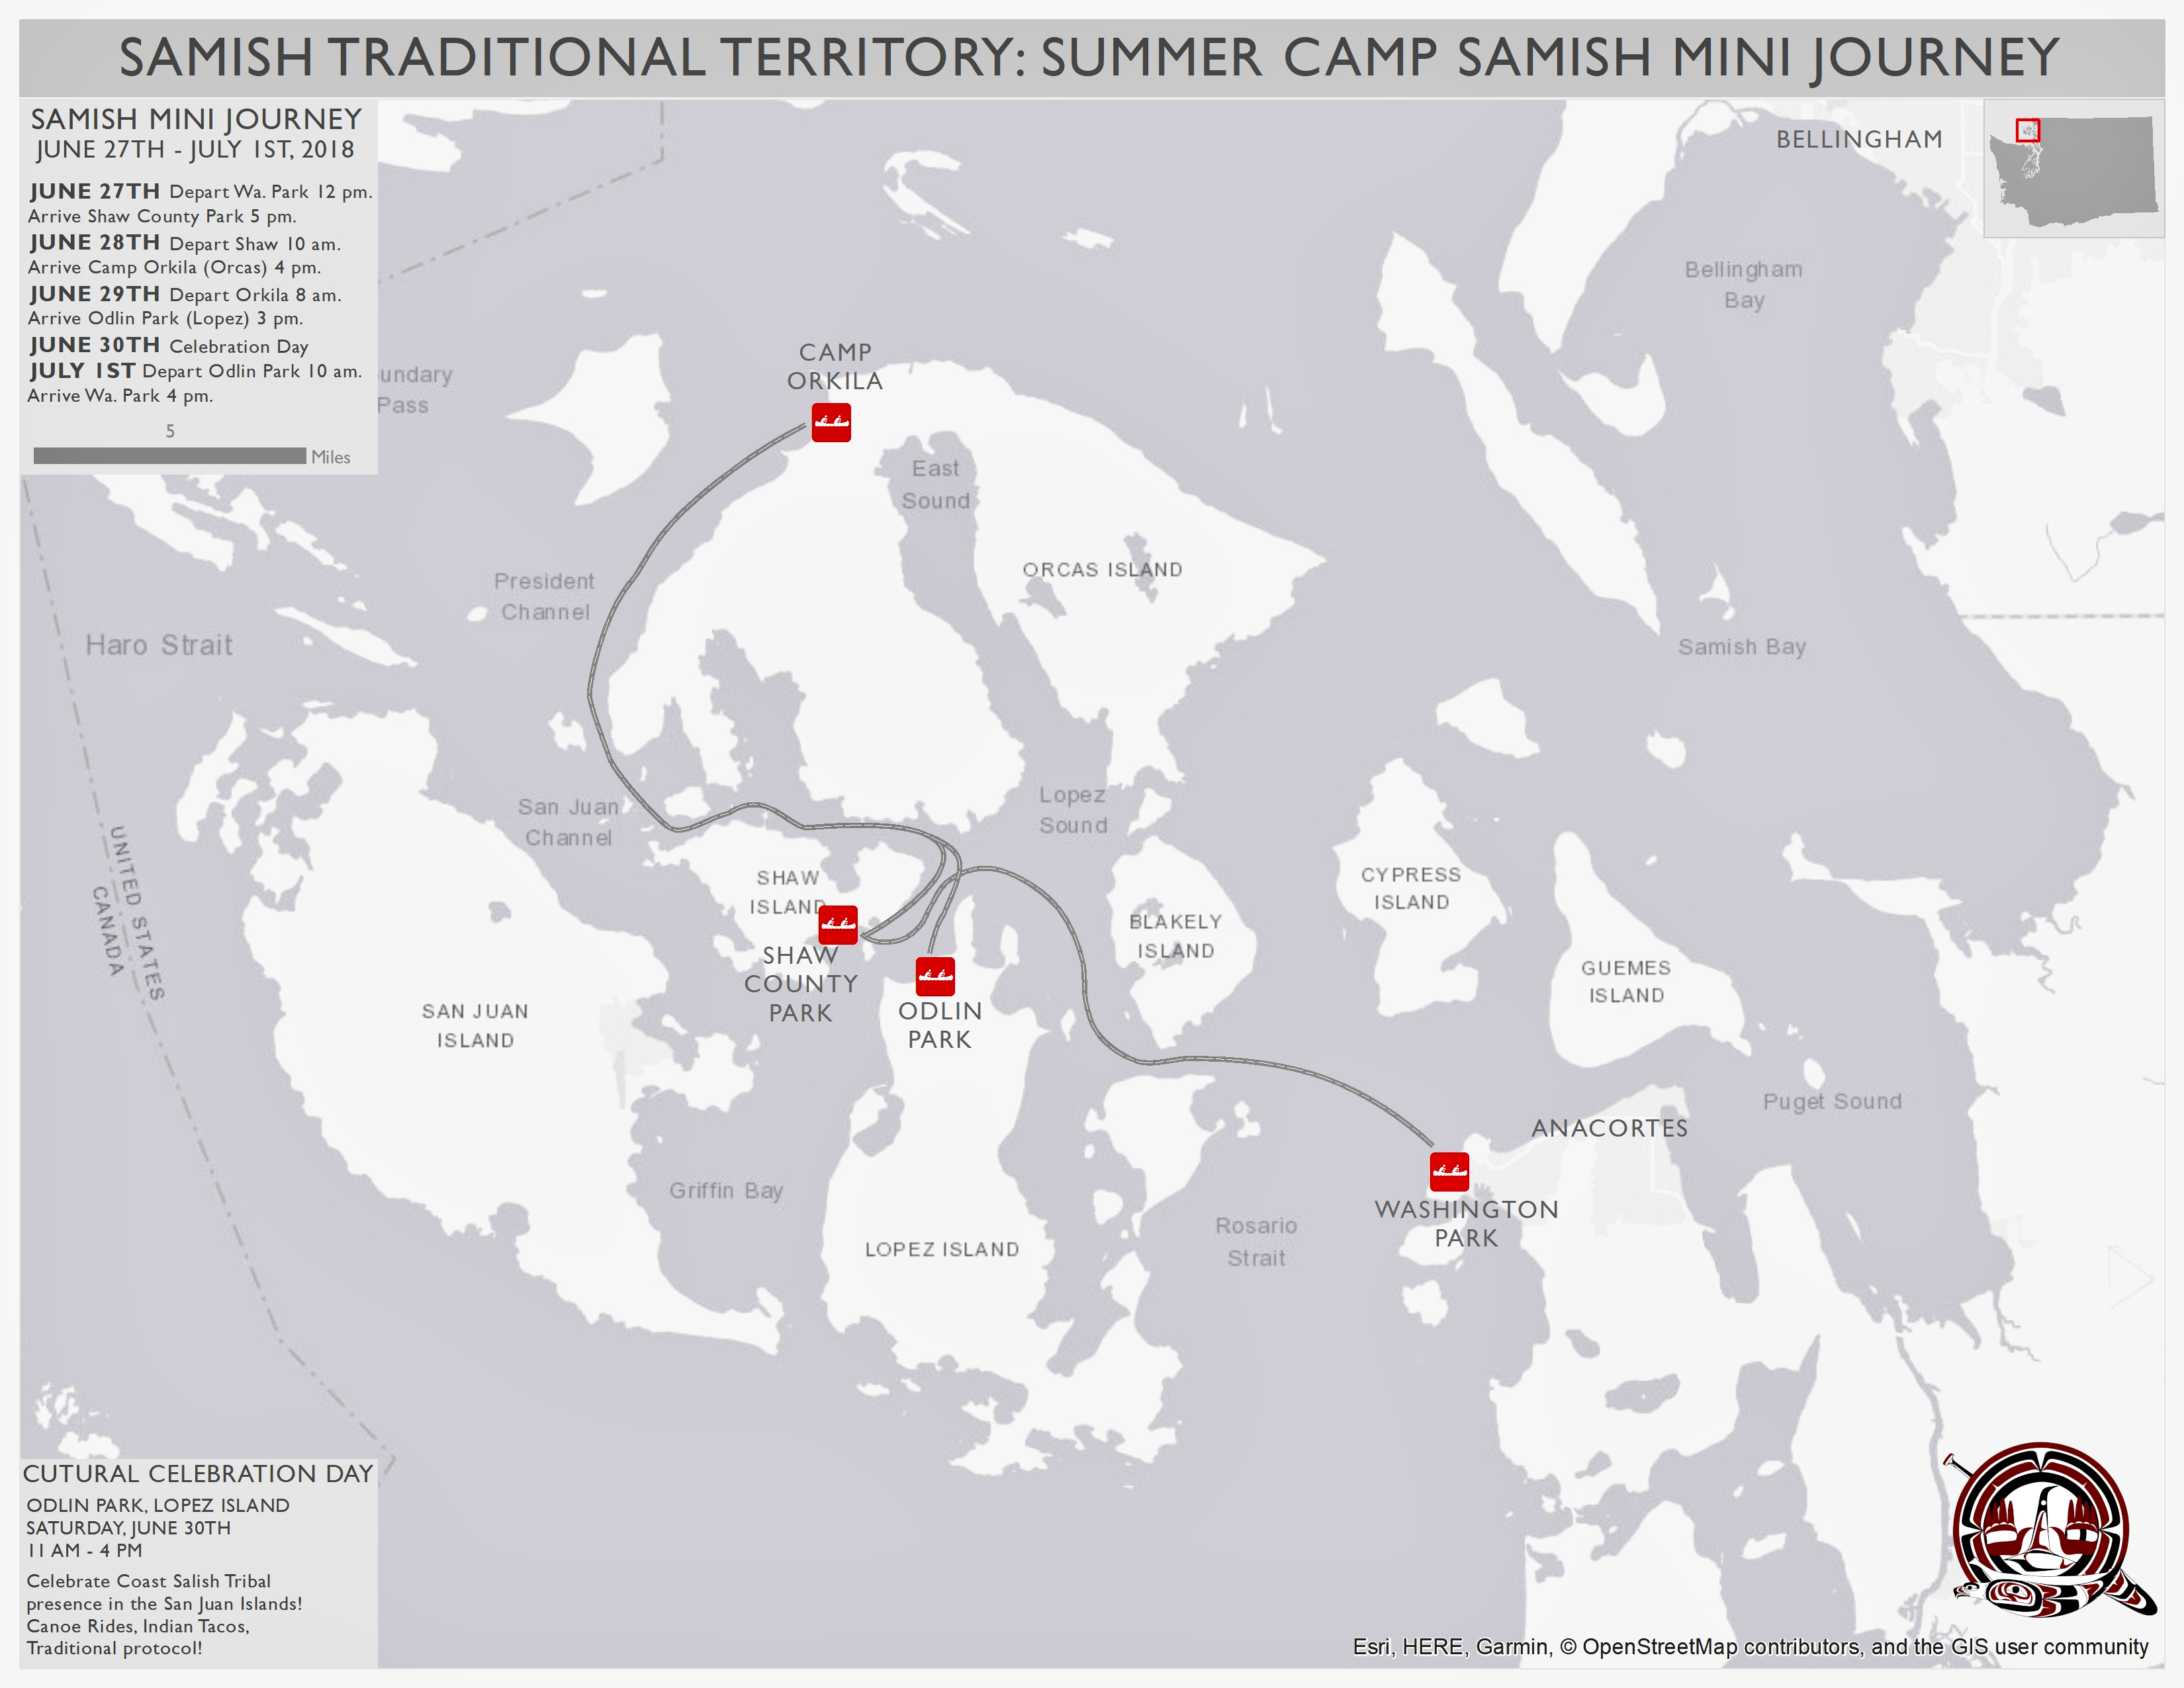 Summer Camp Mini-Journey Route